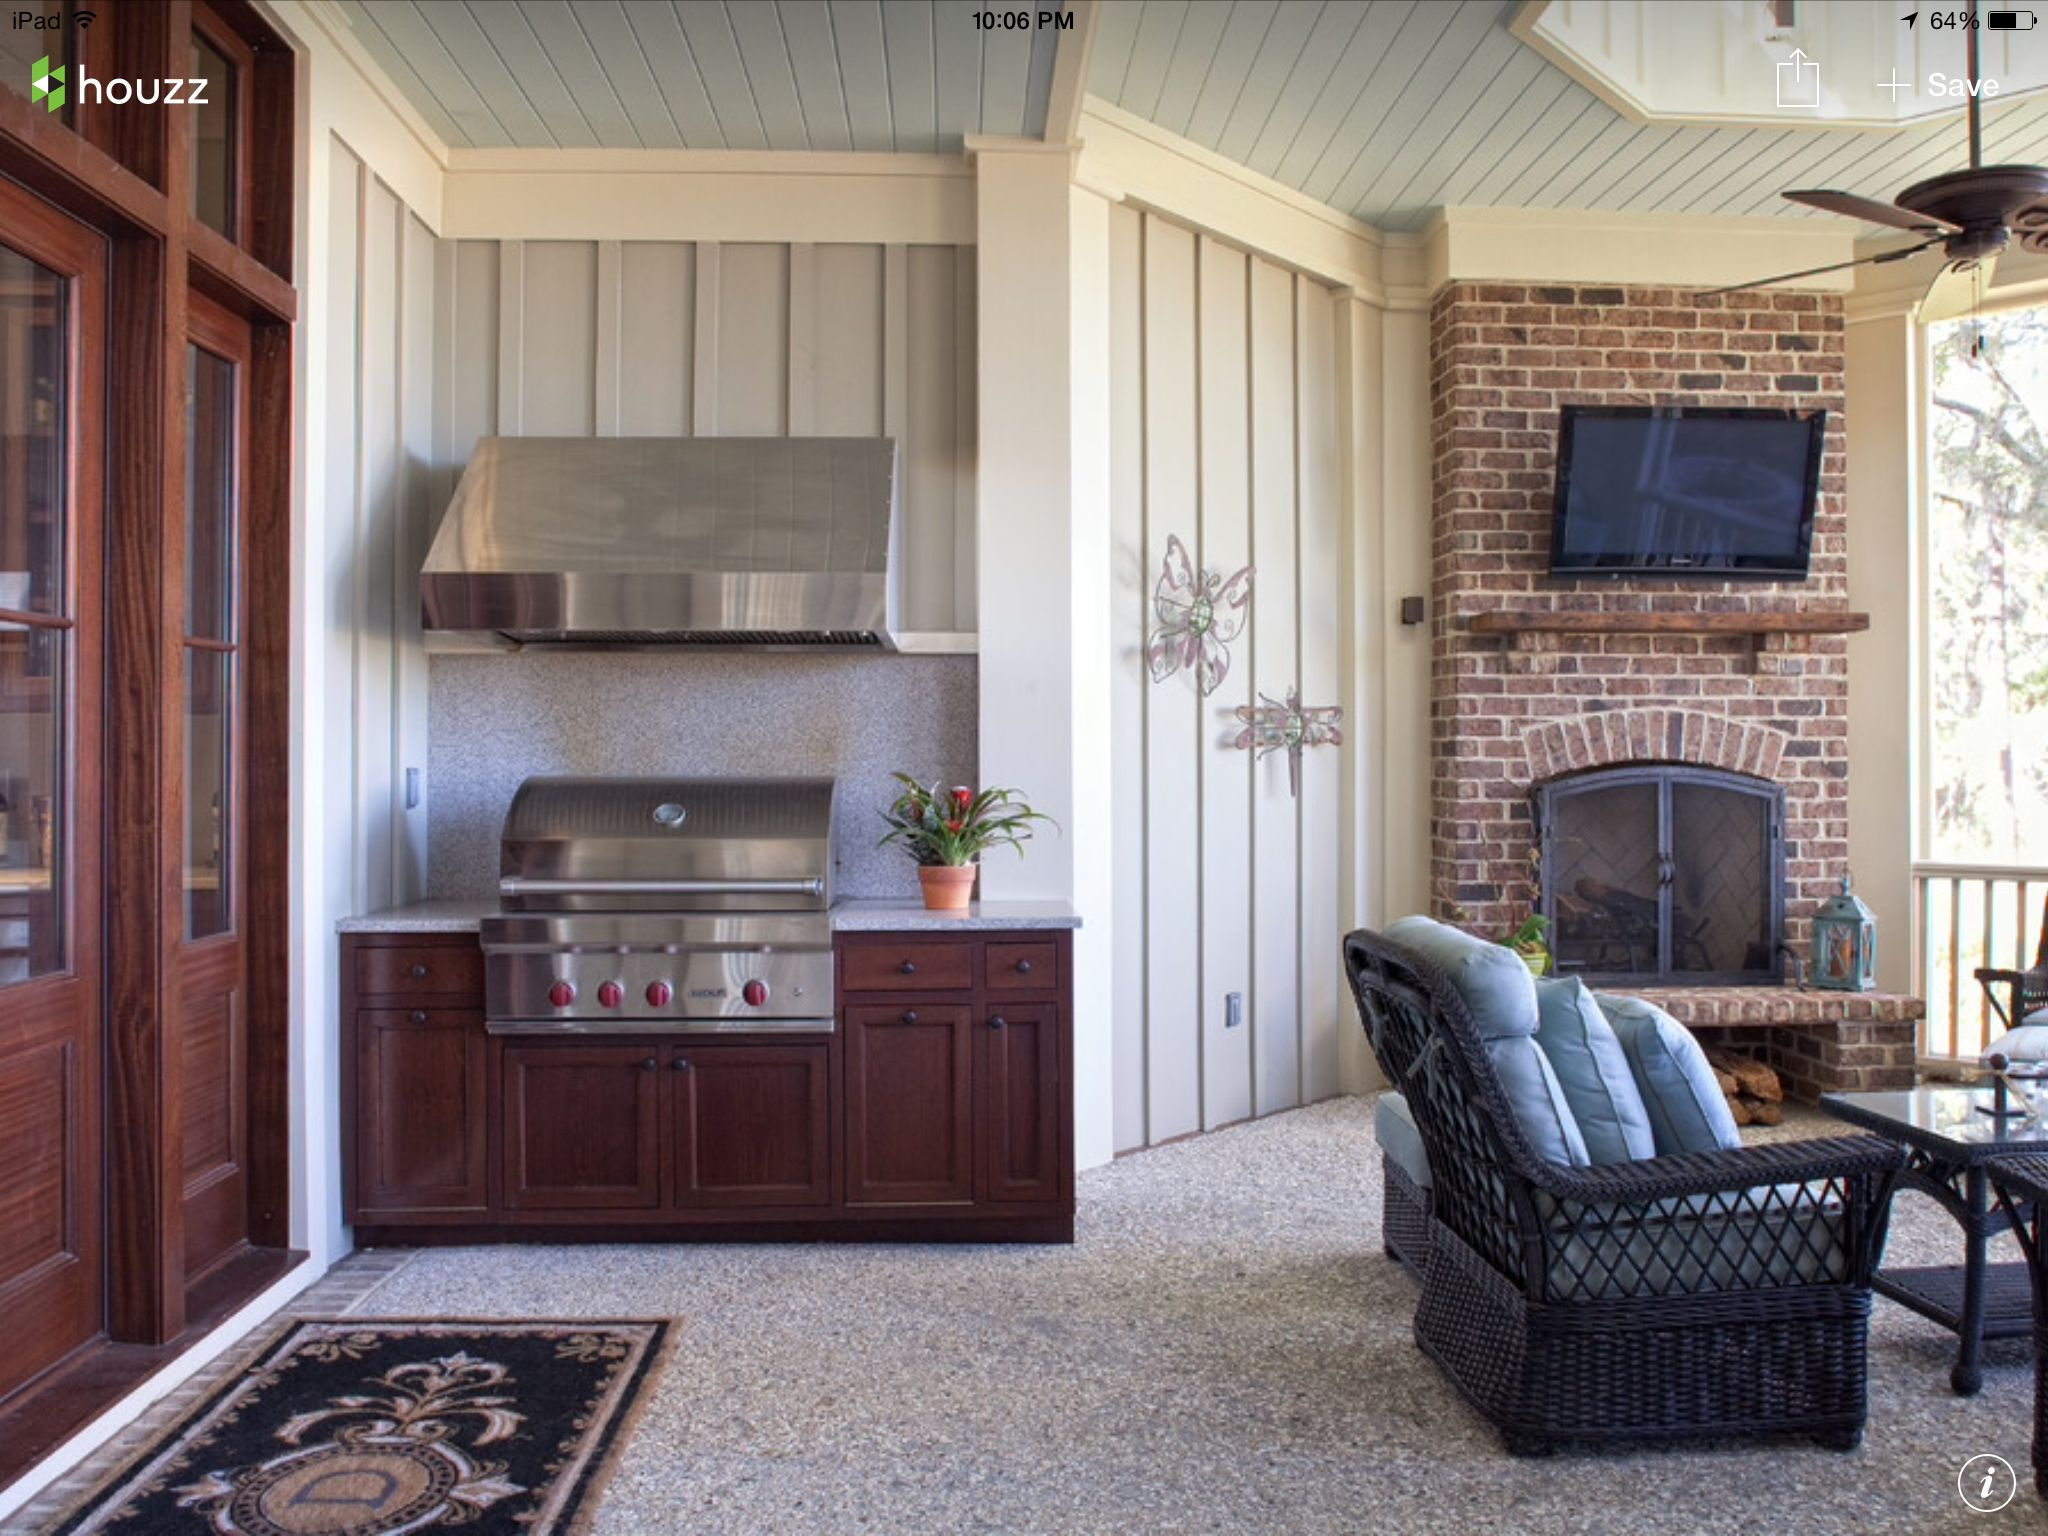 Vent Hood For Grill On Porch Corner Brick Fireplaces Architect House House Of Turquoise